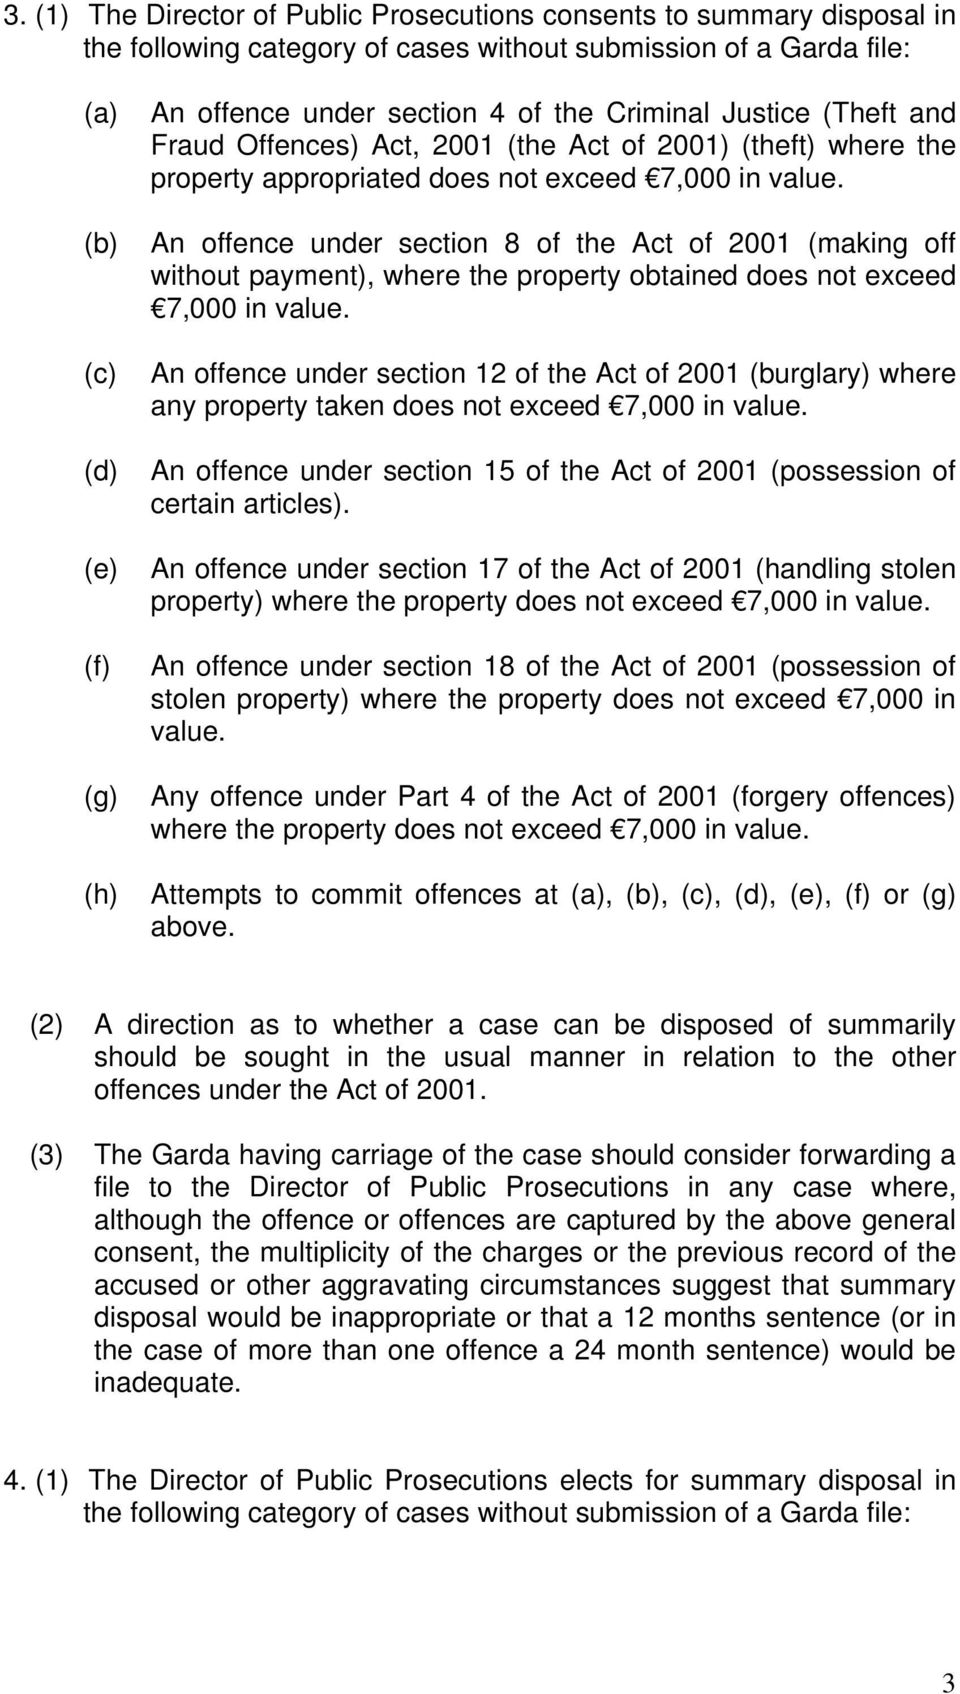 (b) An offence under section 8 of the Act of 2001 (making off without payment), where the property obtained does not exceed 7,000 in value.